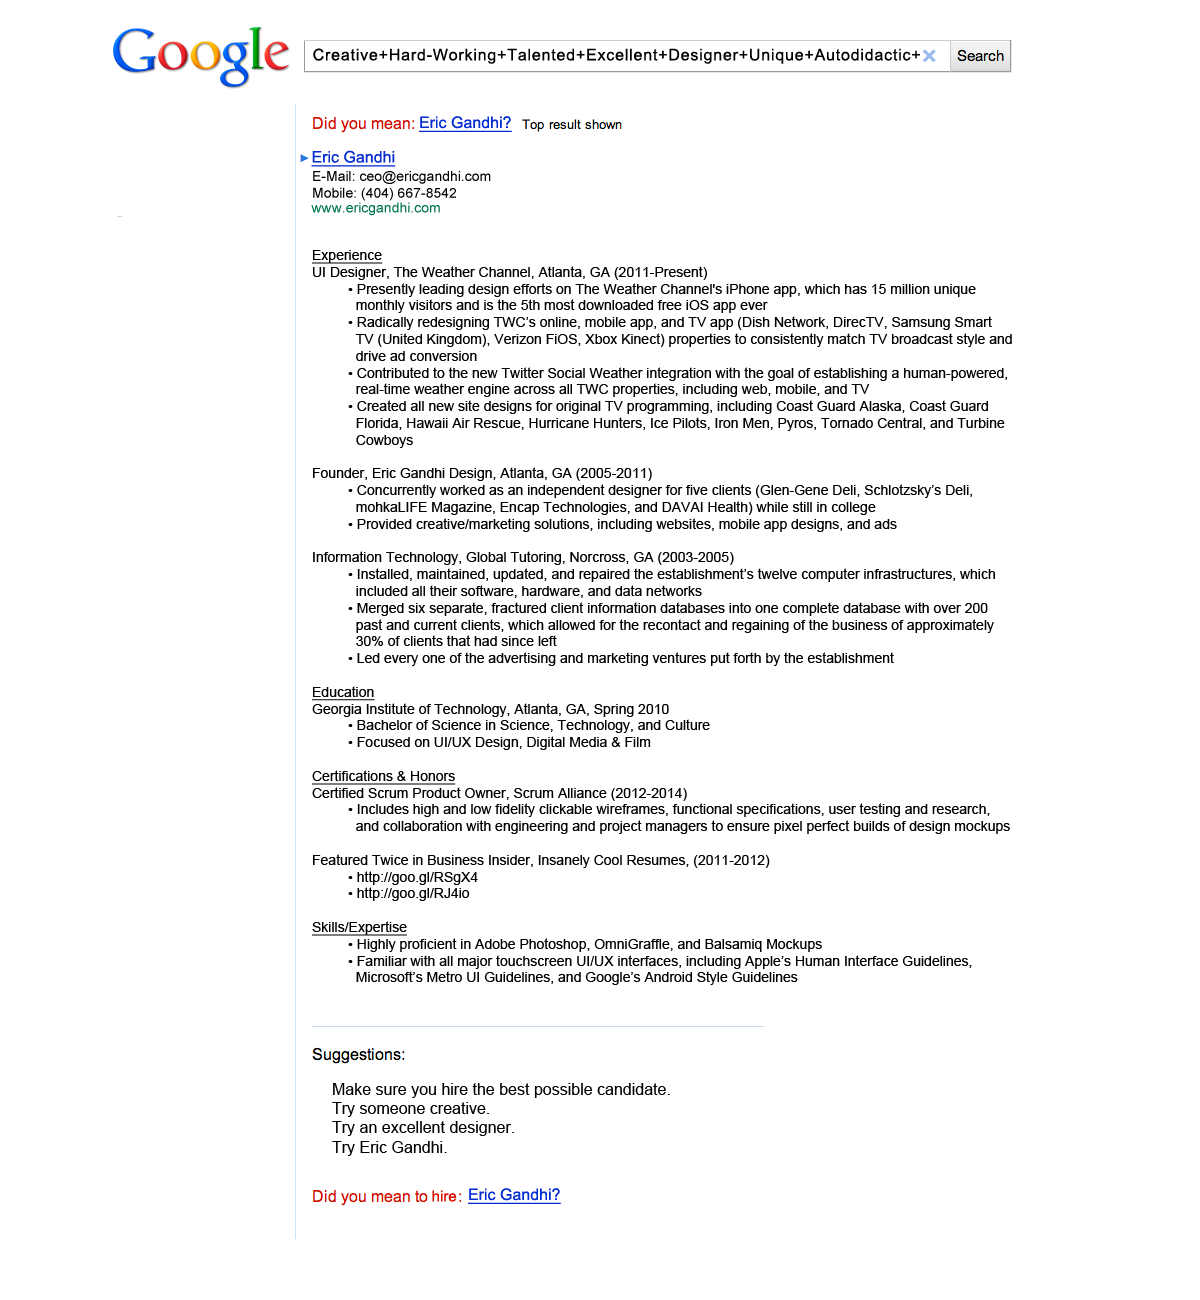 Eric GandhiS Google Themed Cv Got Him An Interview With The